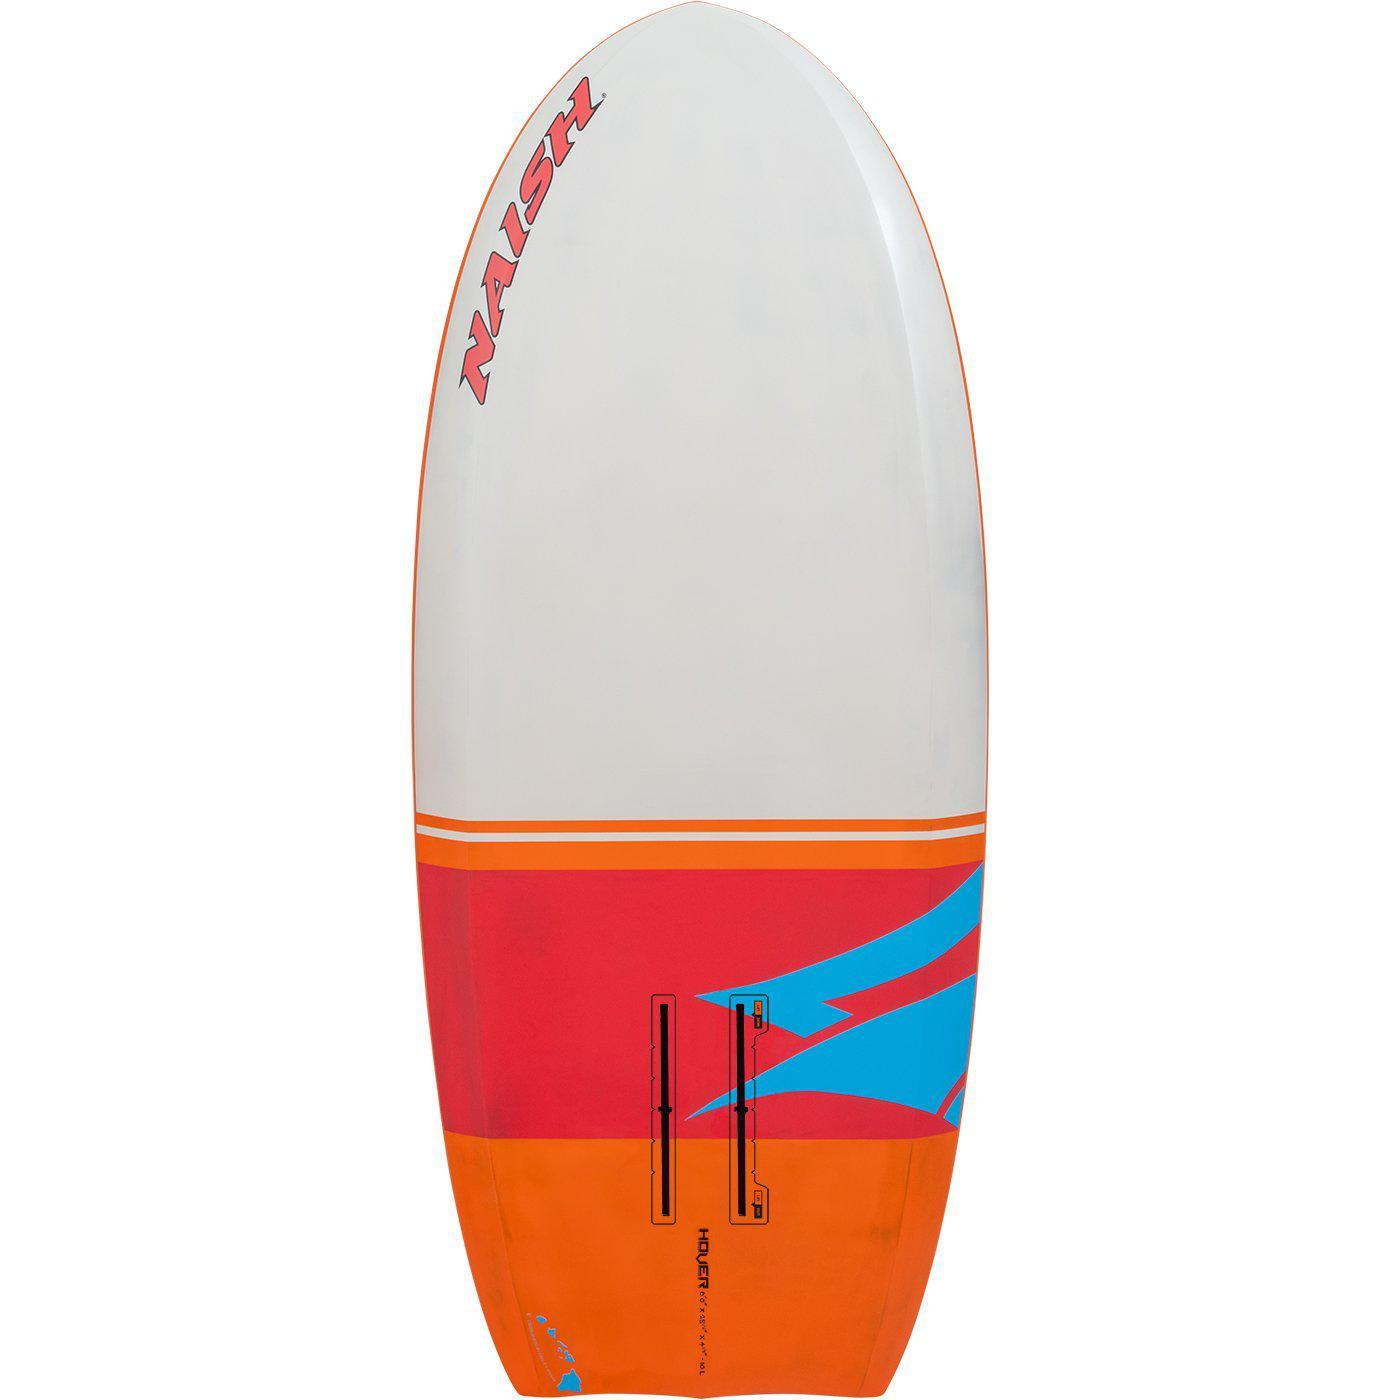 2020 NAISH HOVER SUP FOIL CARBON ULTRA-Big Winds